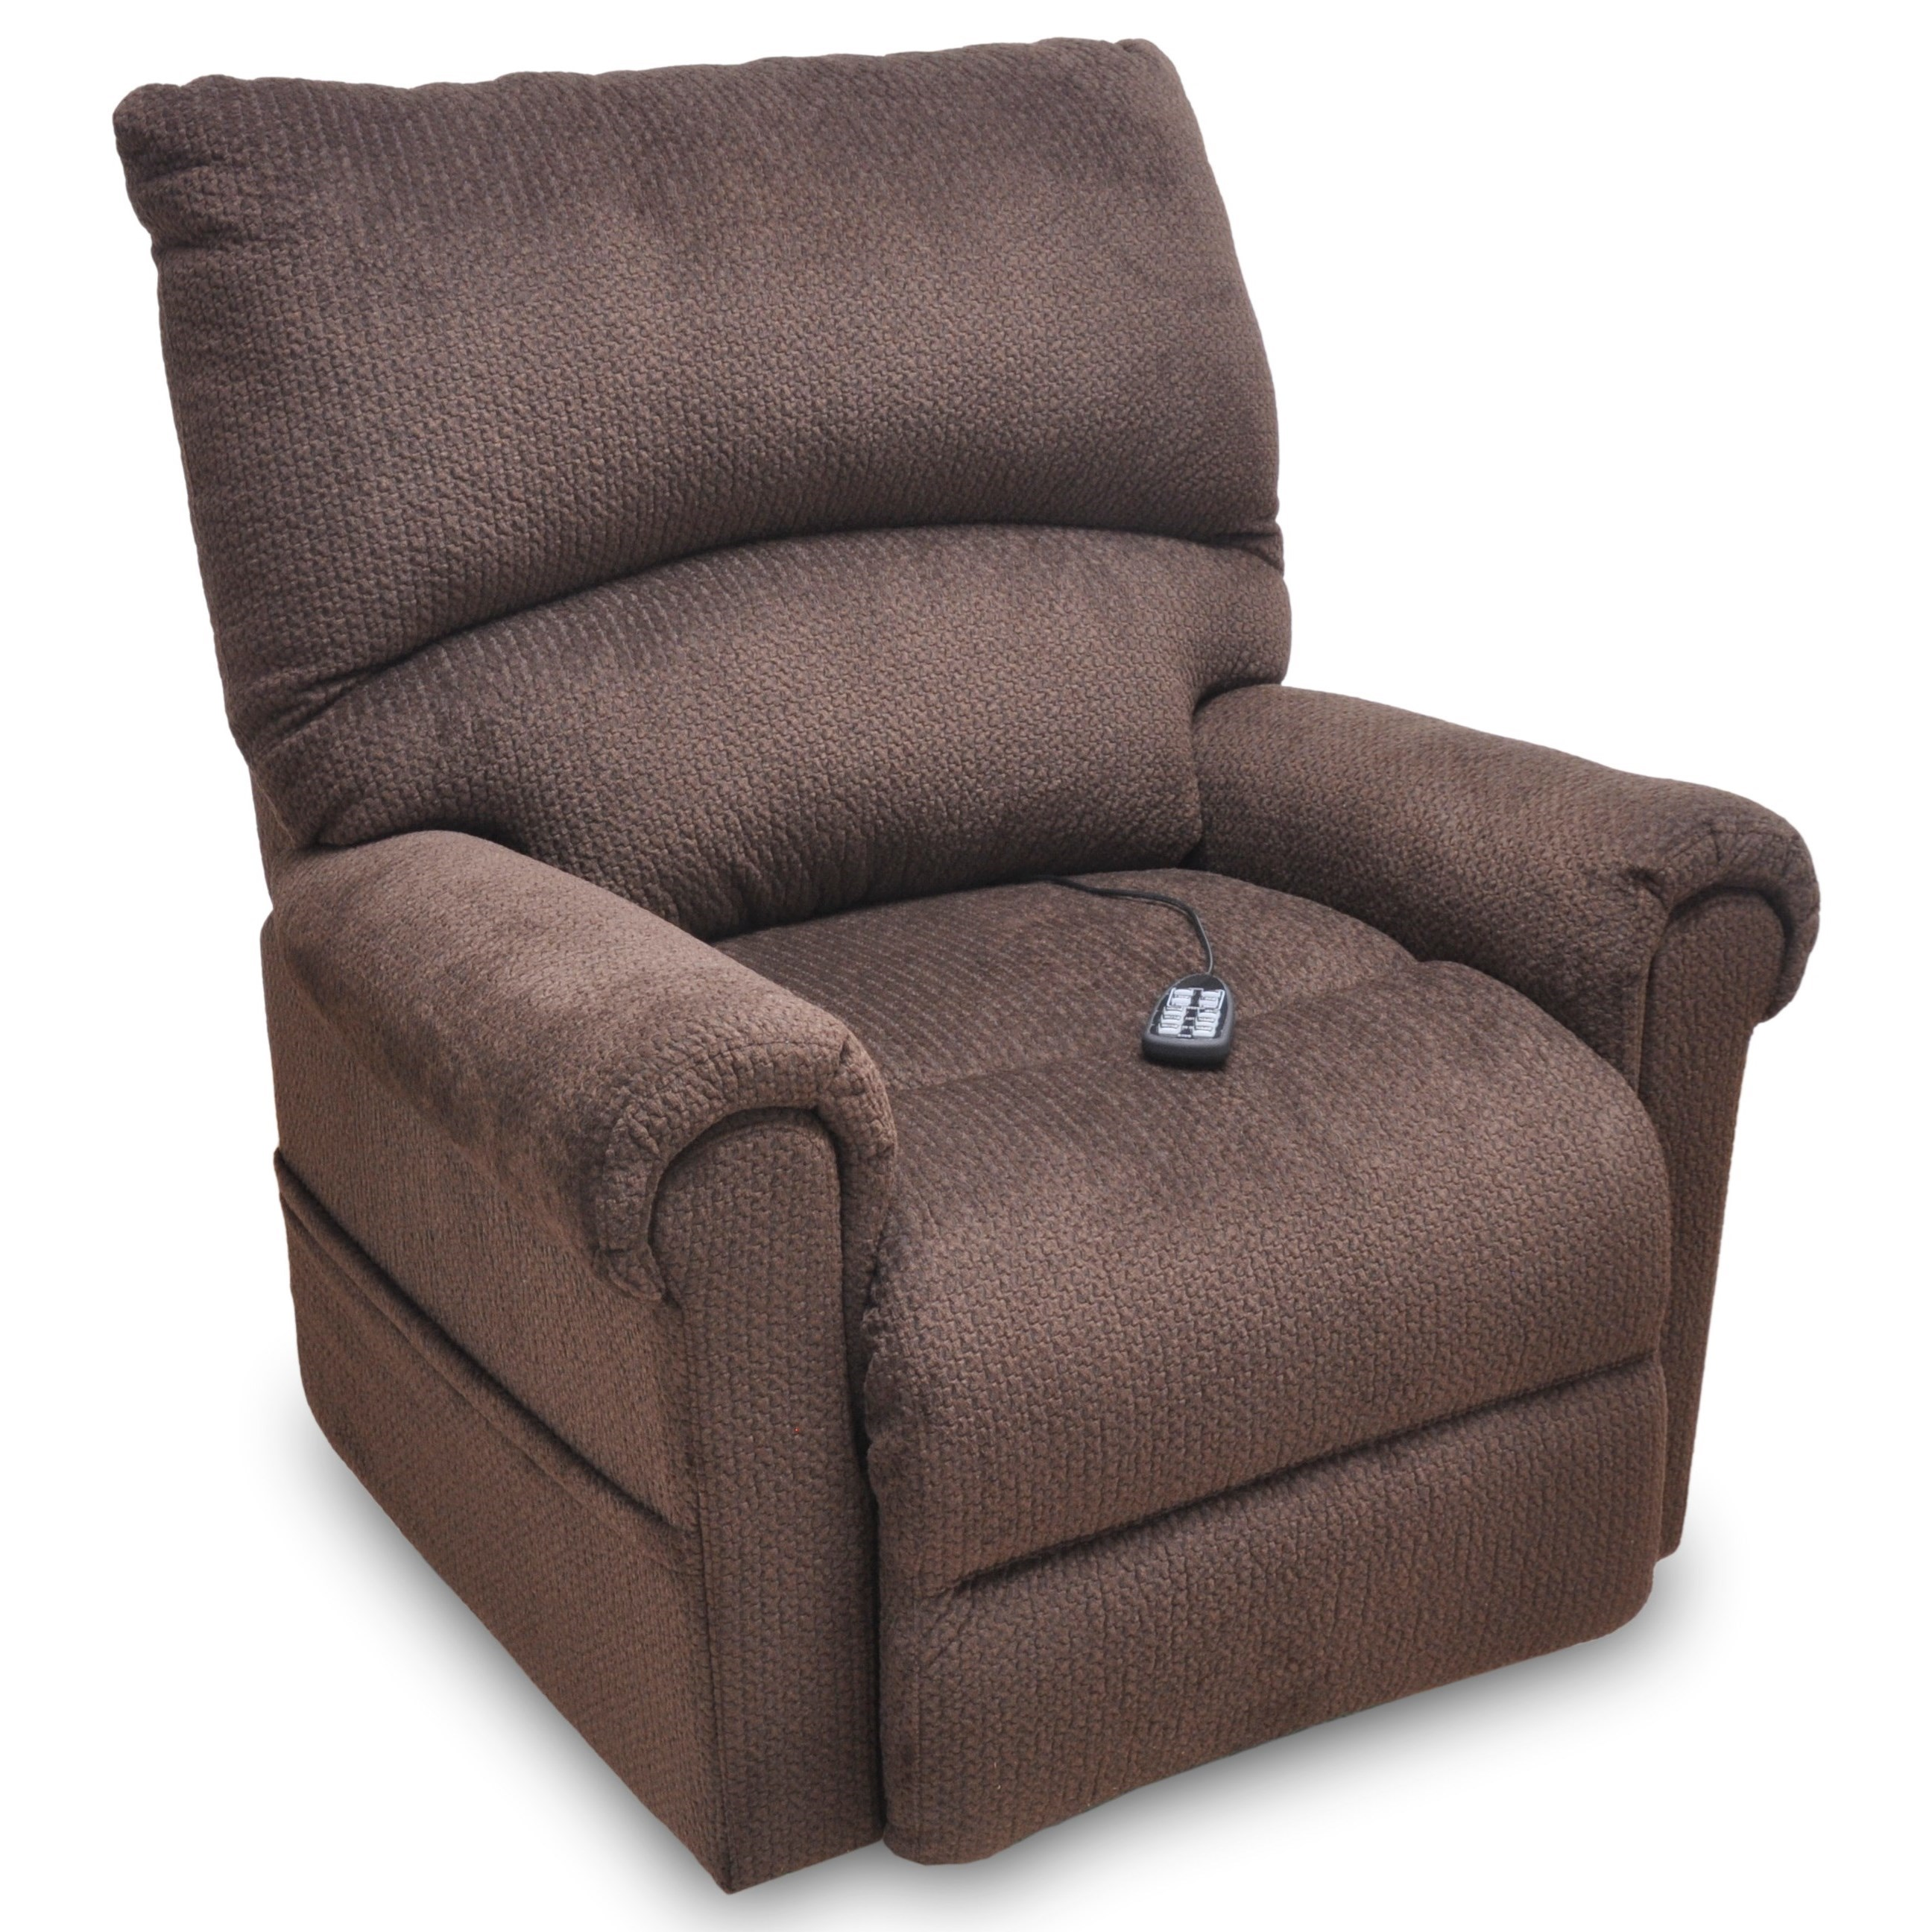 Franklin Lift Chair Reviews Deluxe Heavily Padded Brown